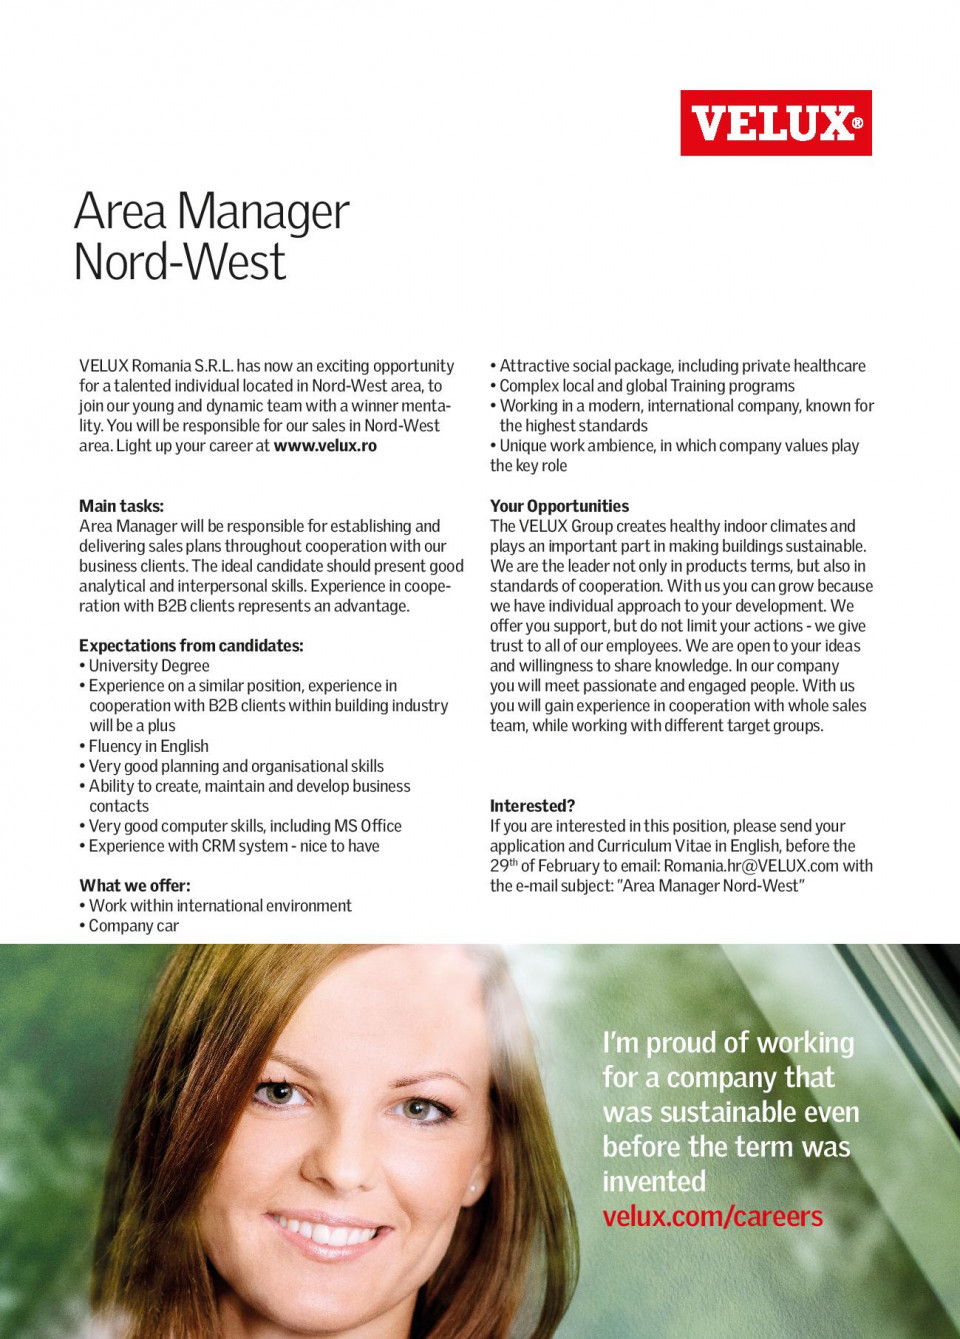 Area Manager Nord-West